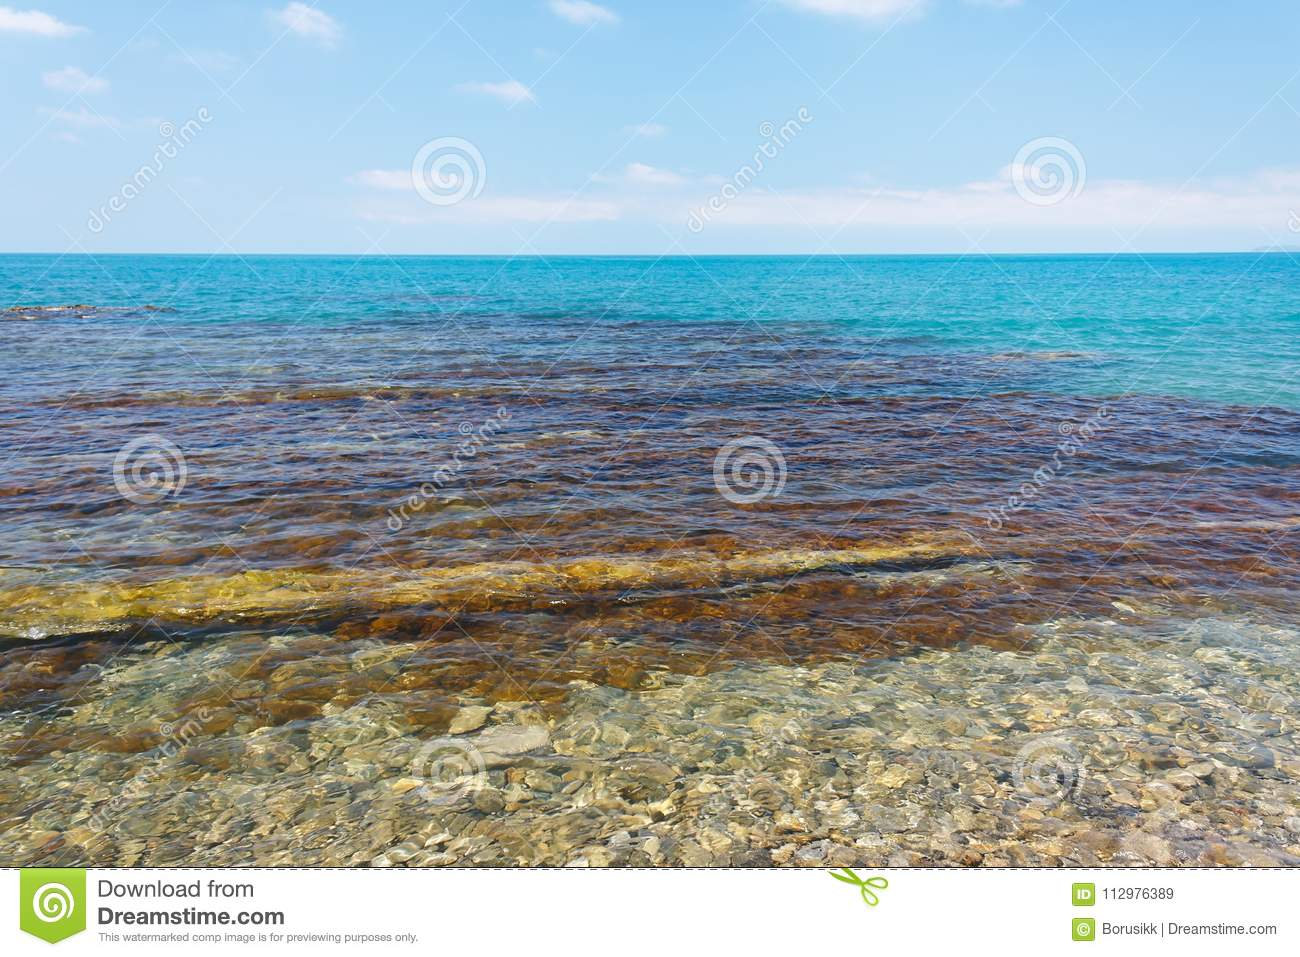 Charming sea view with coastal reefs and clear water